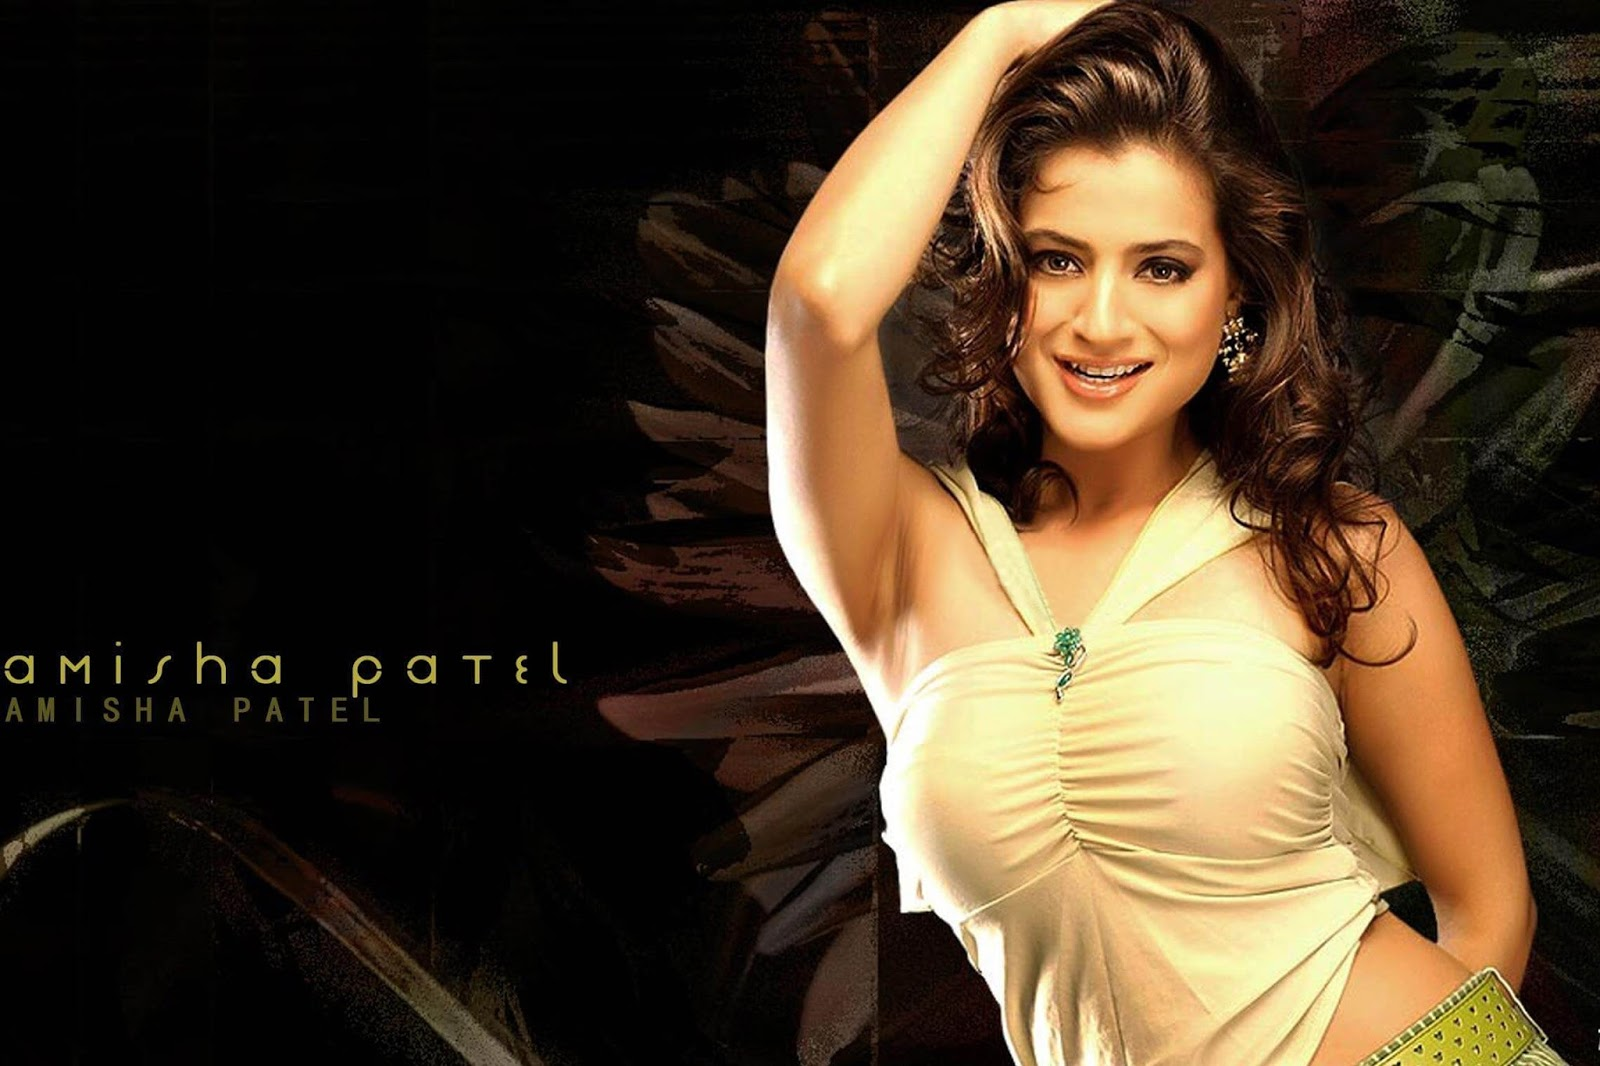 amazing amisha patel look background mobile desktop images free hd